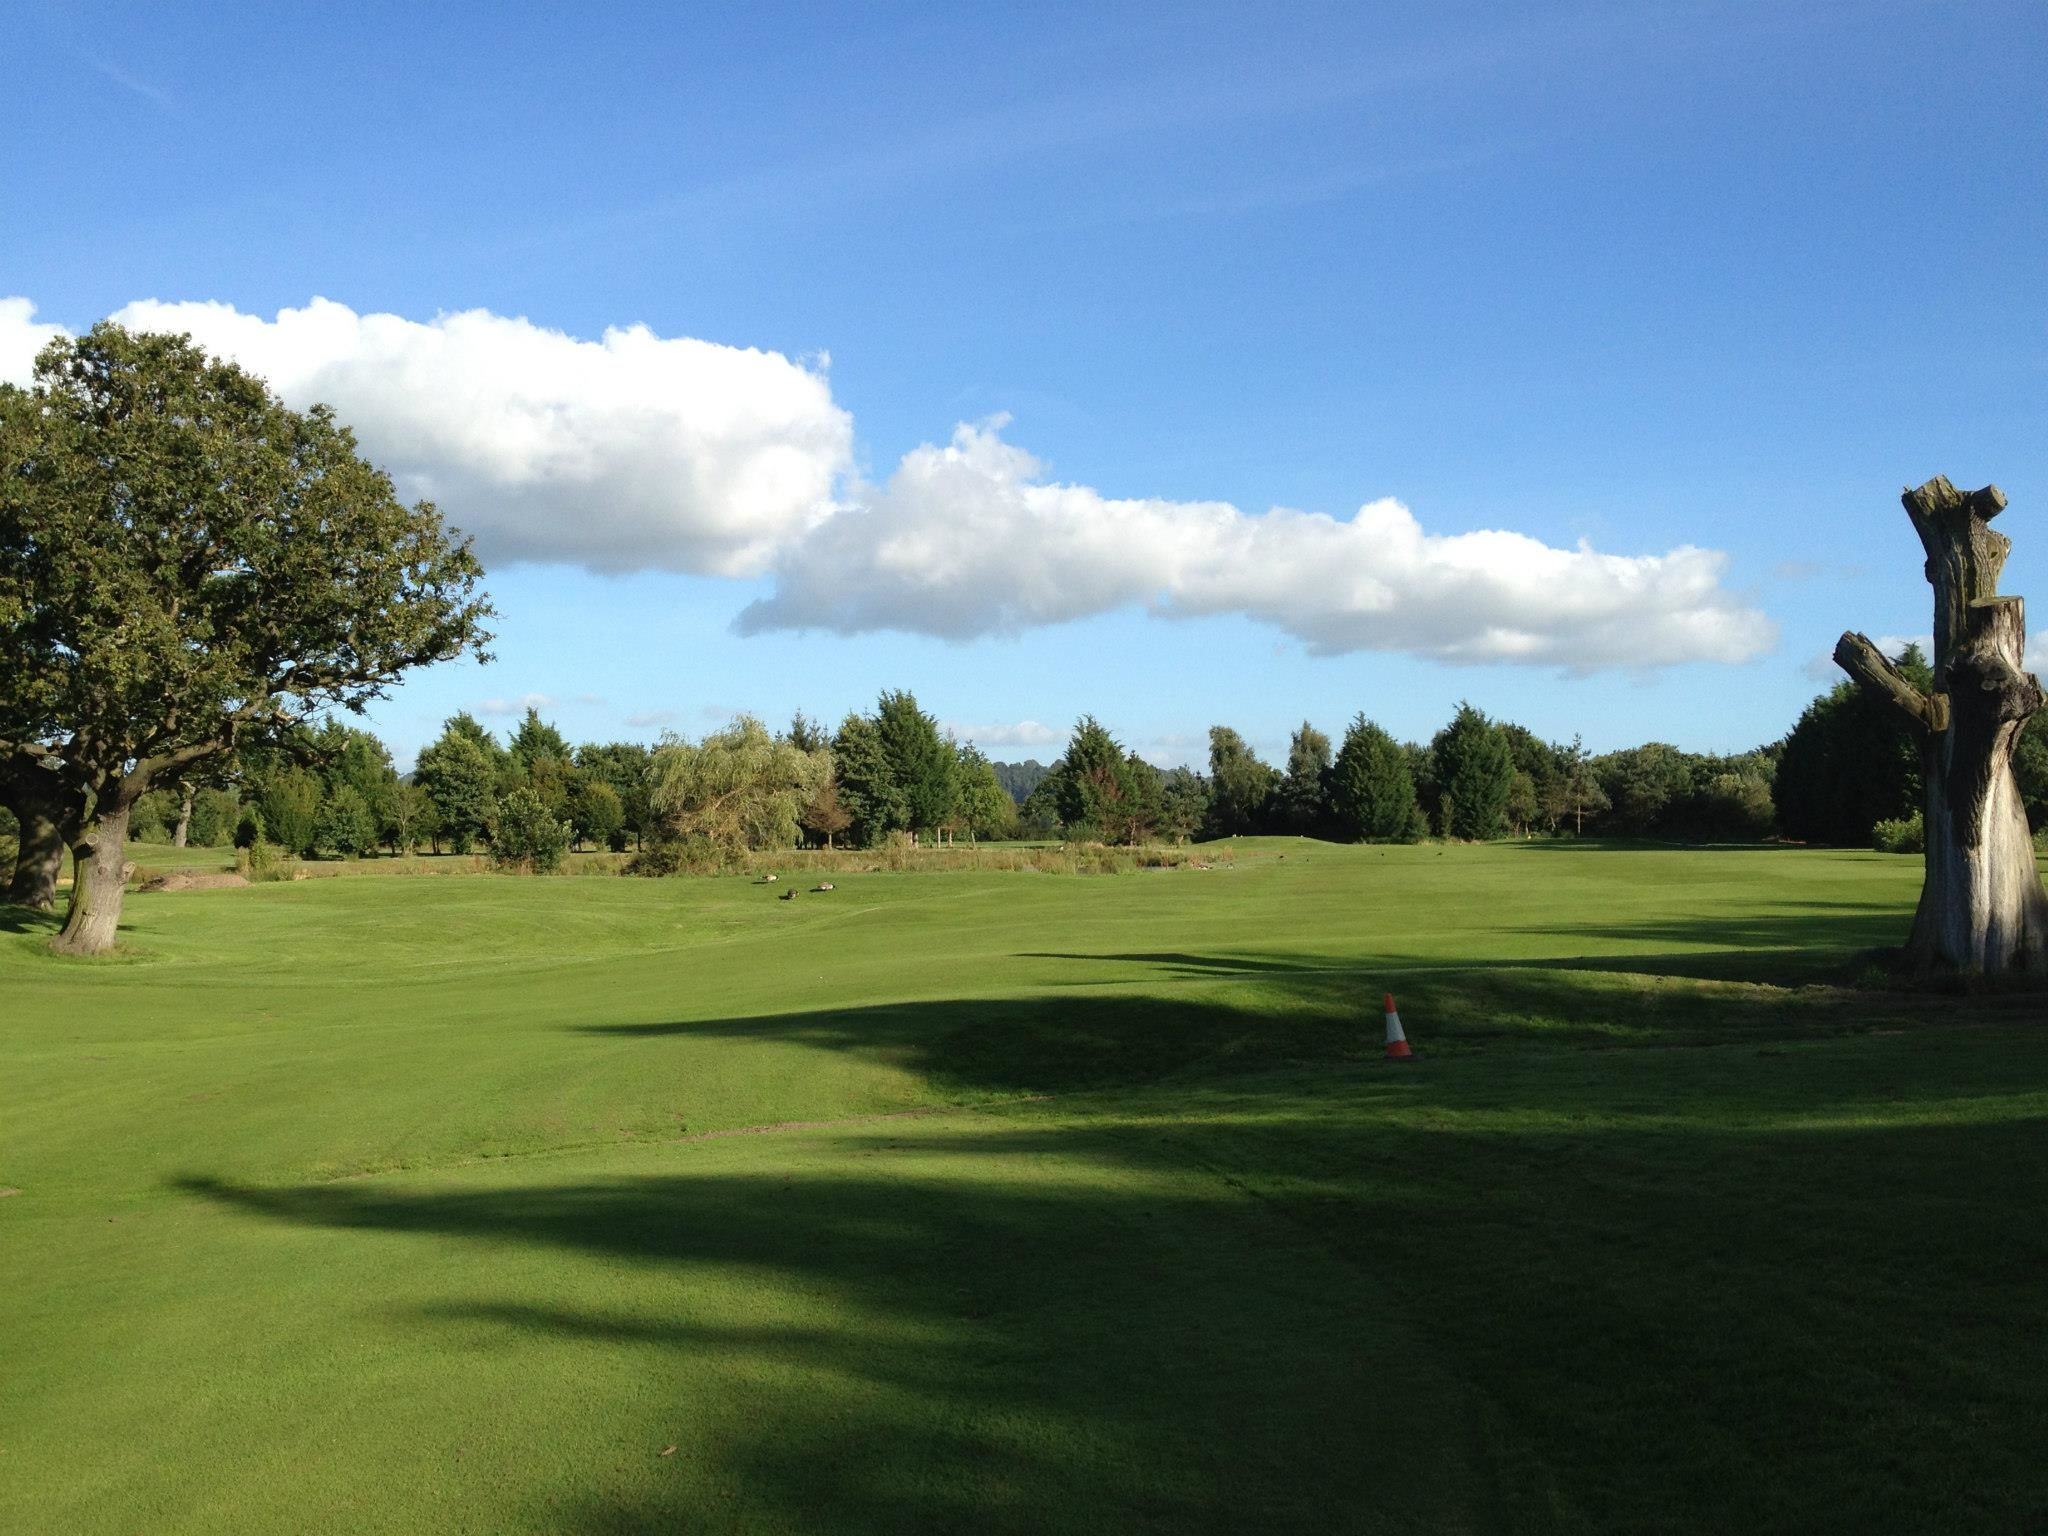 Aldersey green golf club cover picture